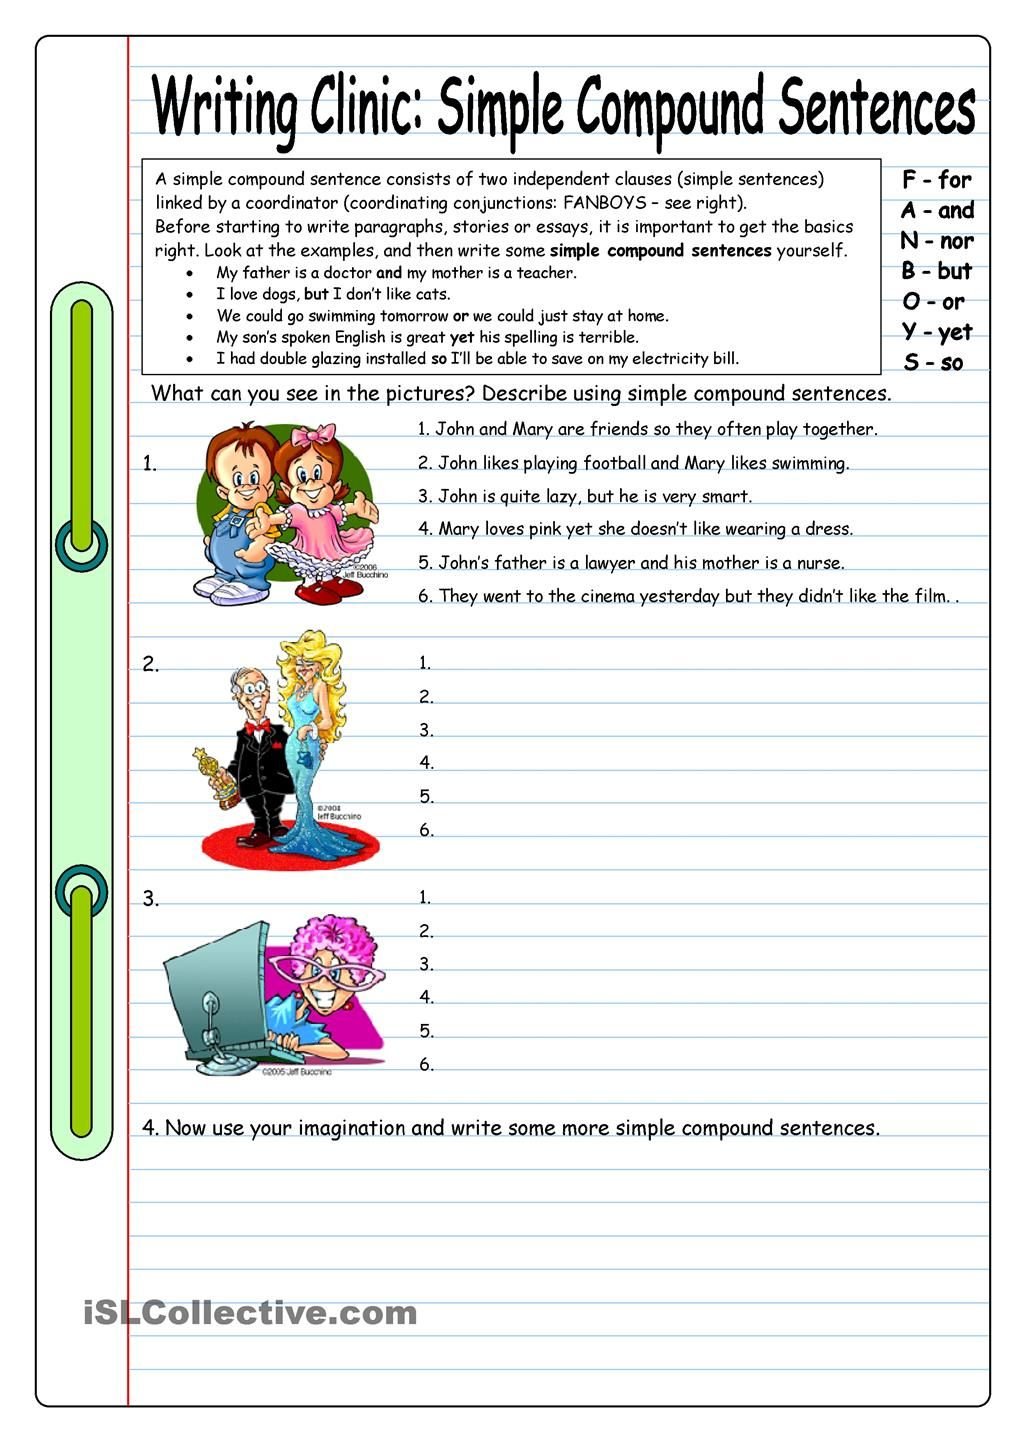 creative writing skills worksheets In this writing prompt worksheet, students use their creative writing skills to write a story based on the picture shown that includes the 4 specific events and people listed get free access see review.